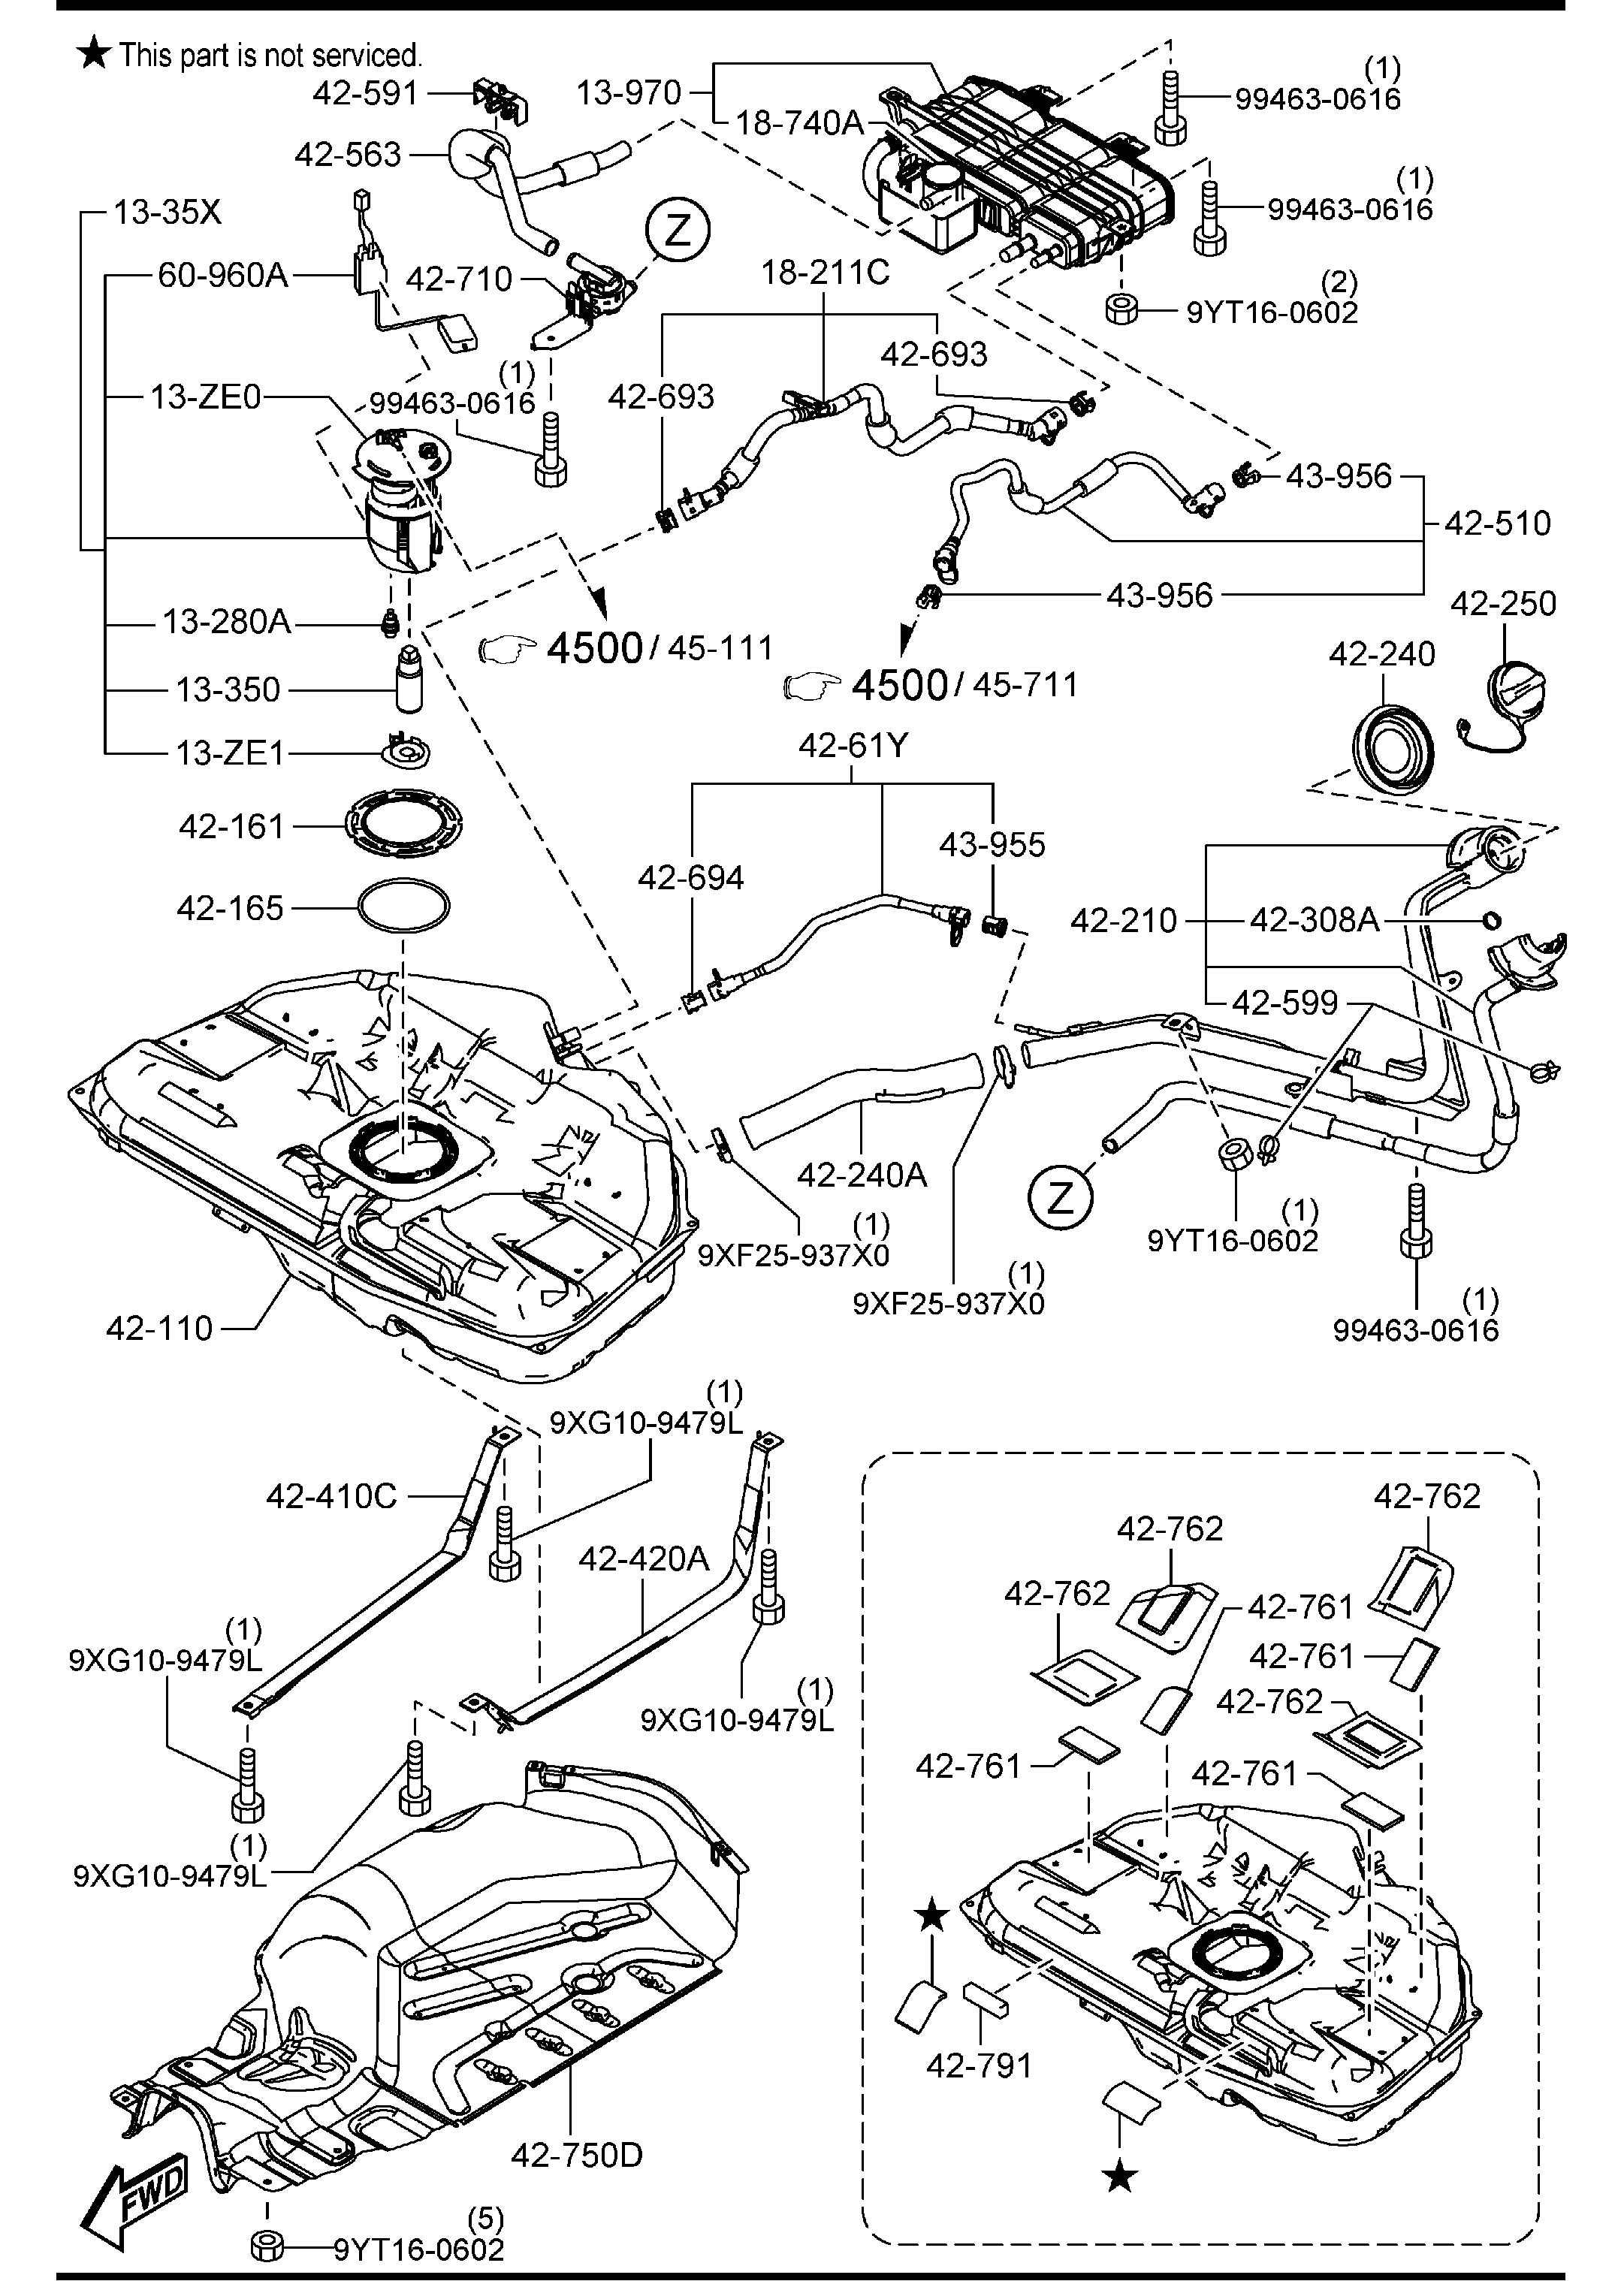 Mazda Cx 7 Serpentine Belt Diagram